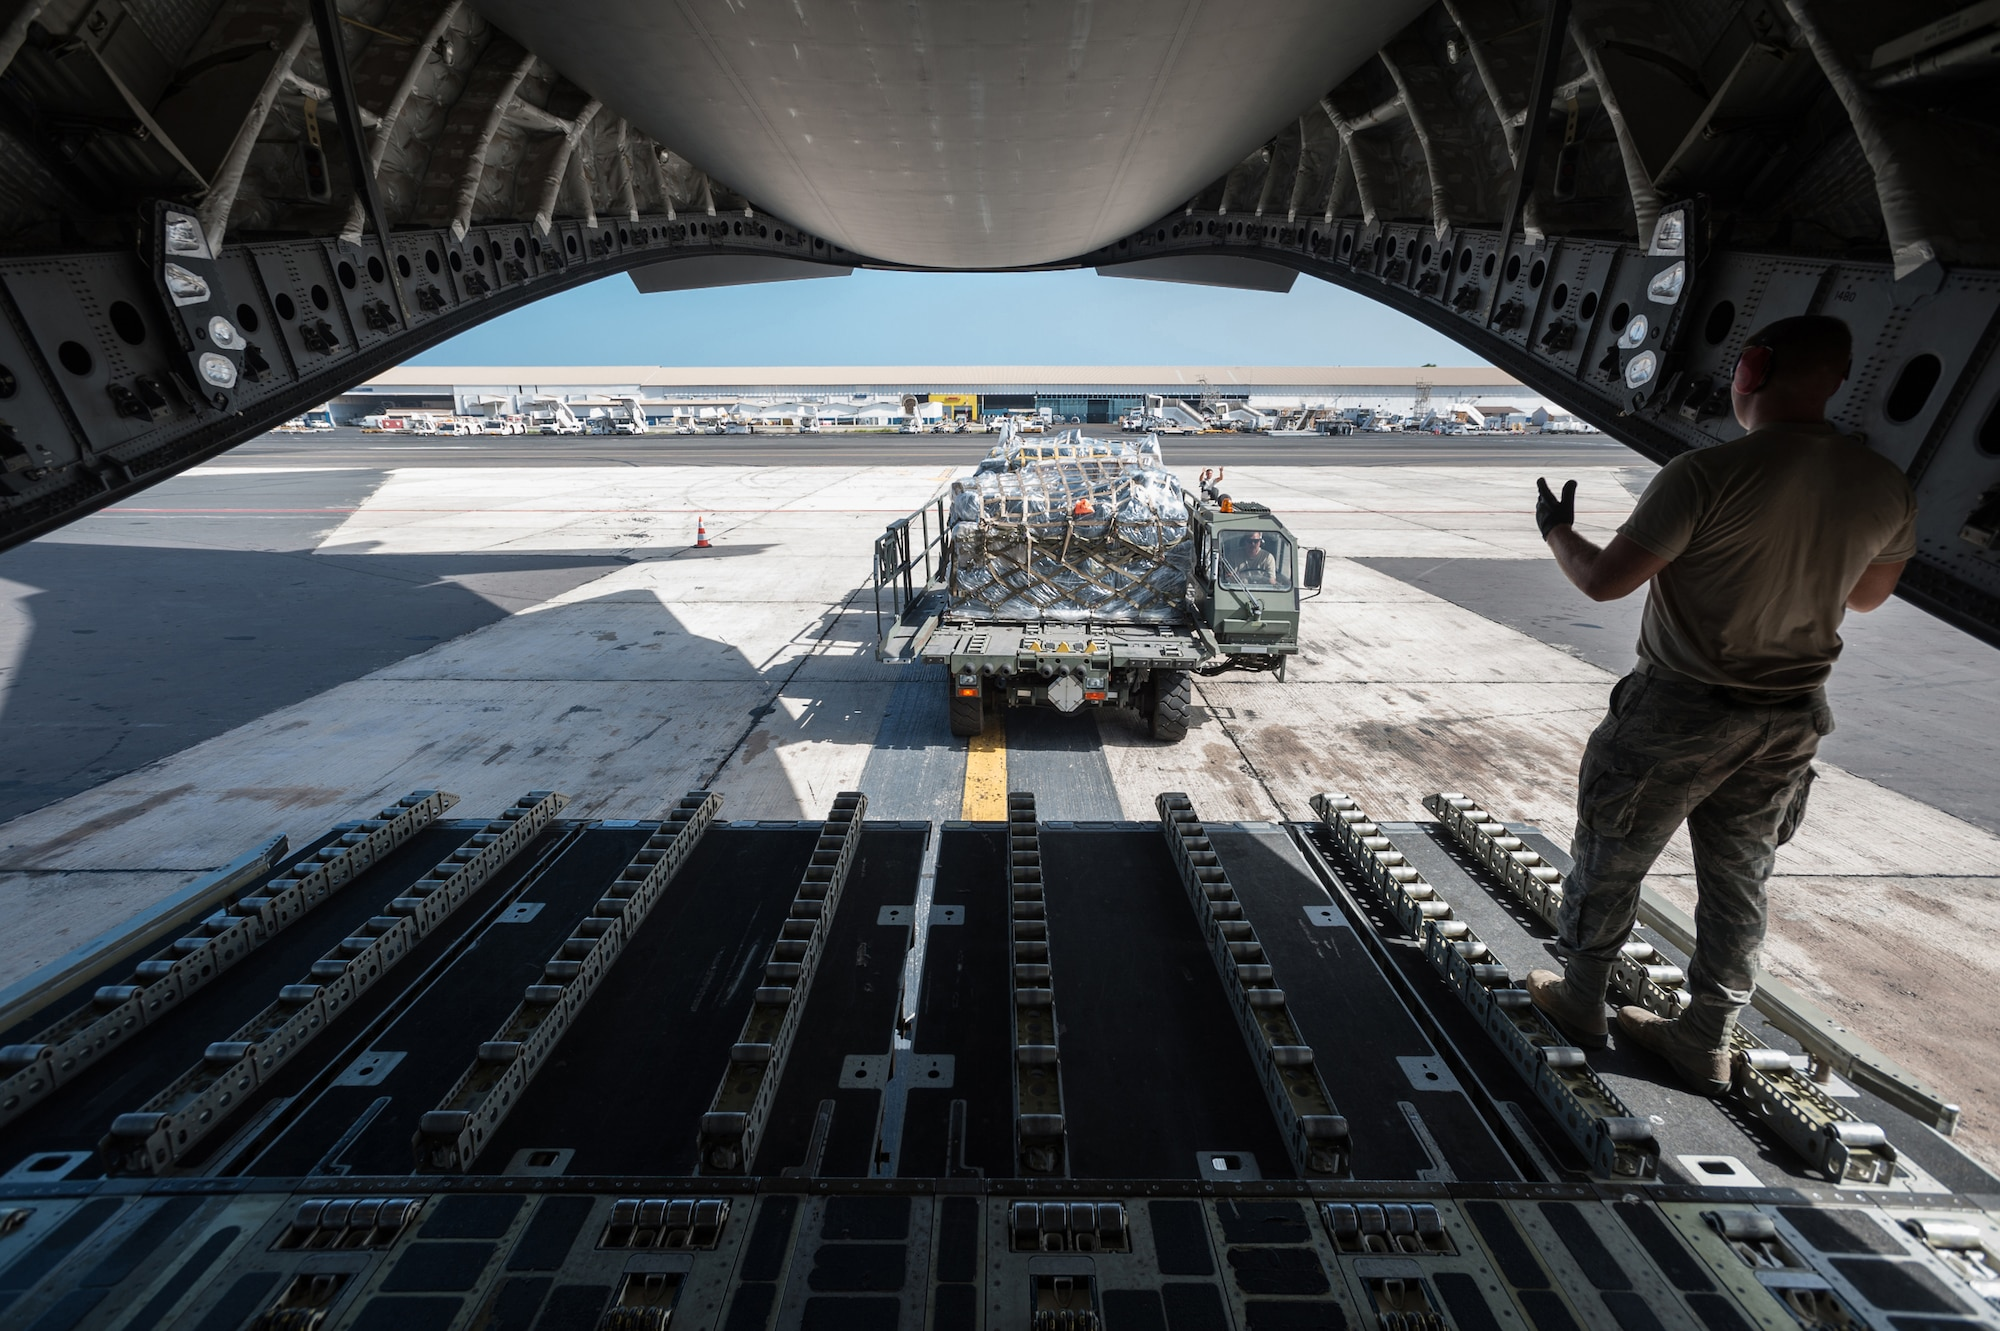 Airmen from the Kentucky Air National Guard's 123rd Contingency Response Group offload cargo pallets from a C-17 Globemaster III, Oct. 18, 2014, as part of ramp operations at Léopold Sédar Senghor International Airport in Dakar, Senegal, in support of Operation United Assistance. The Airmen are operating an intermediate staging base in Dakar to funnel humanitarian aid and military support cargo into affected areas, working in concert with Soldiers from the U.S. Army's 689th Rapid Port Opening Element to staff a Joint Task Force-Port Opening as part of the U.S. Agency for International Development-led, whole-of-government effort to respond to the Ebola outbreak. The C-17 is assigned to Travis Air Force Base, Calif. (U.S. Air National Guard photo/Maj. Dale Greer)